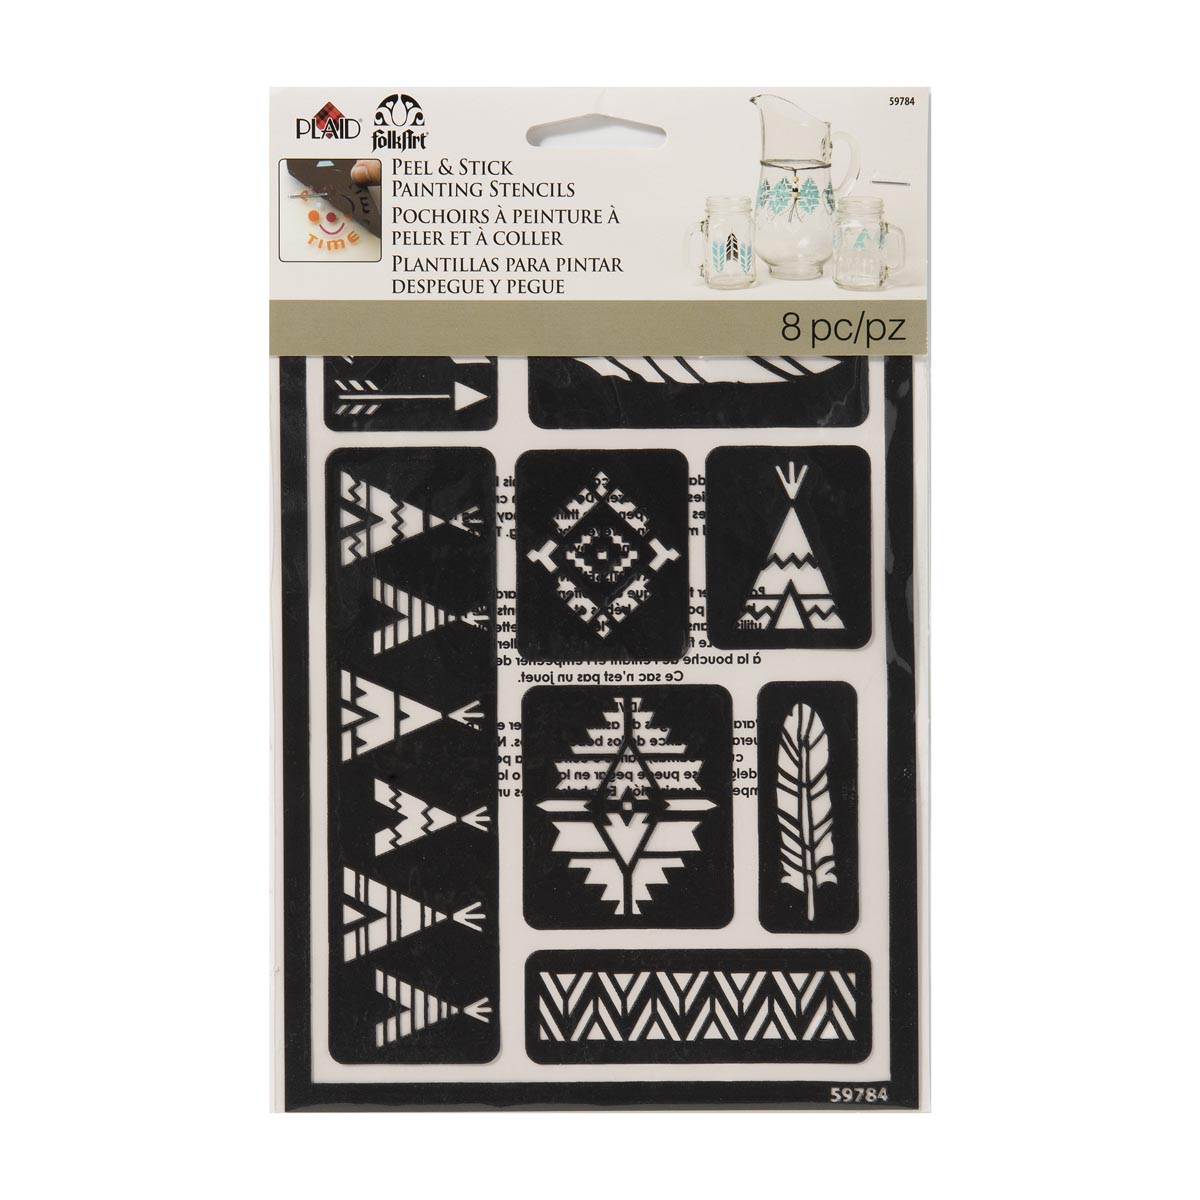 FolkArt ® Peel & Stick Painting Stencils - Tribal - 59784